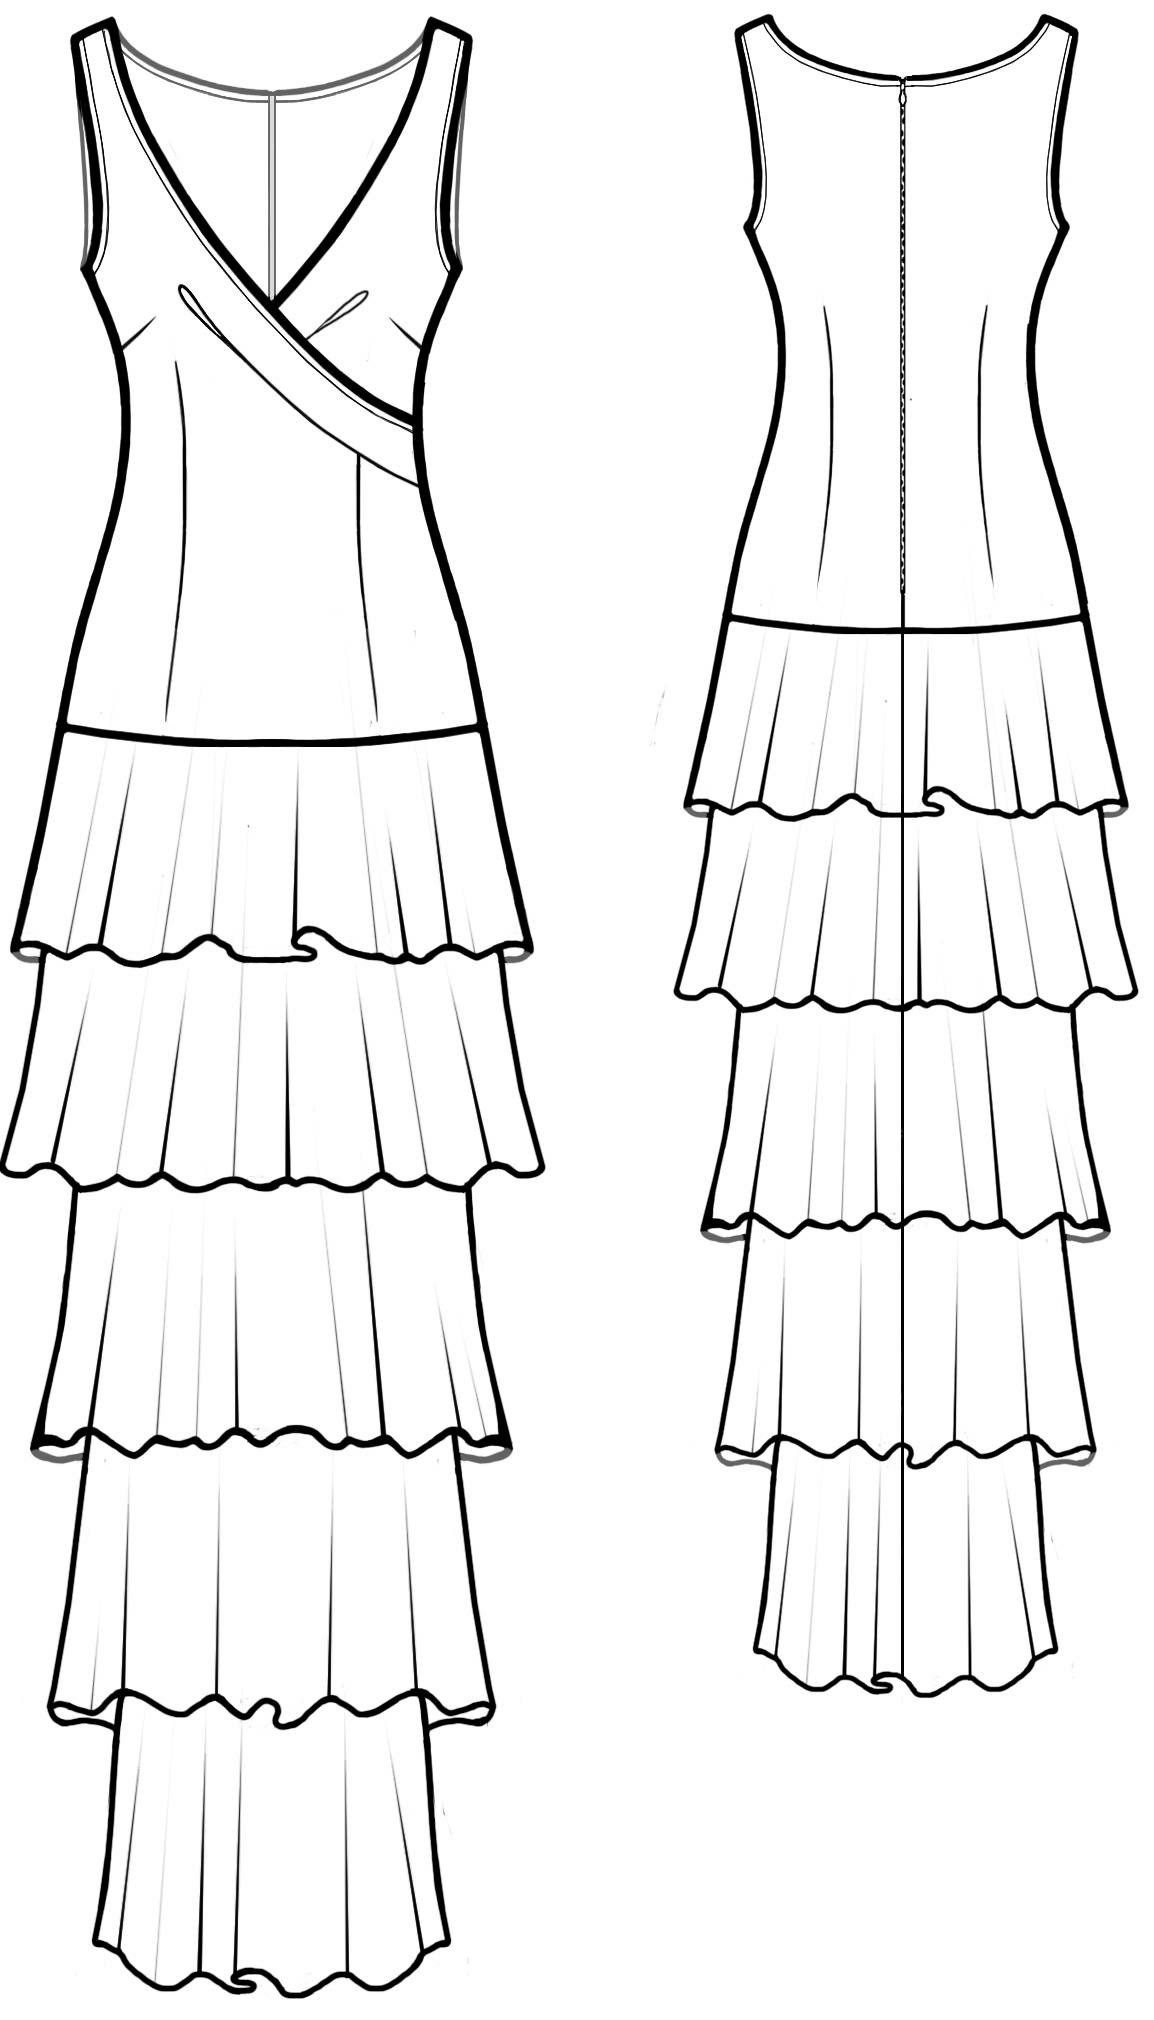 Dress With Frills Sewing Pattern 5586. Madetomeasure